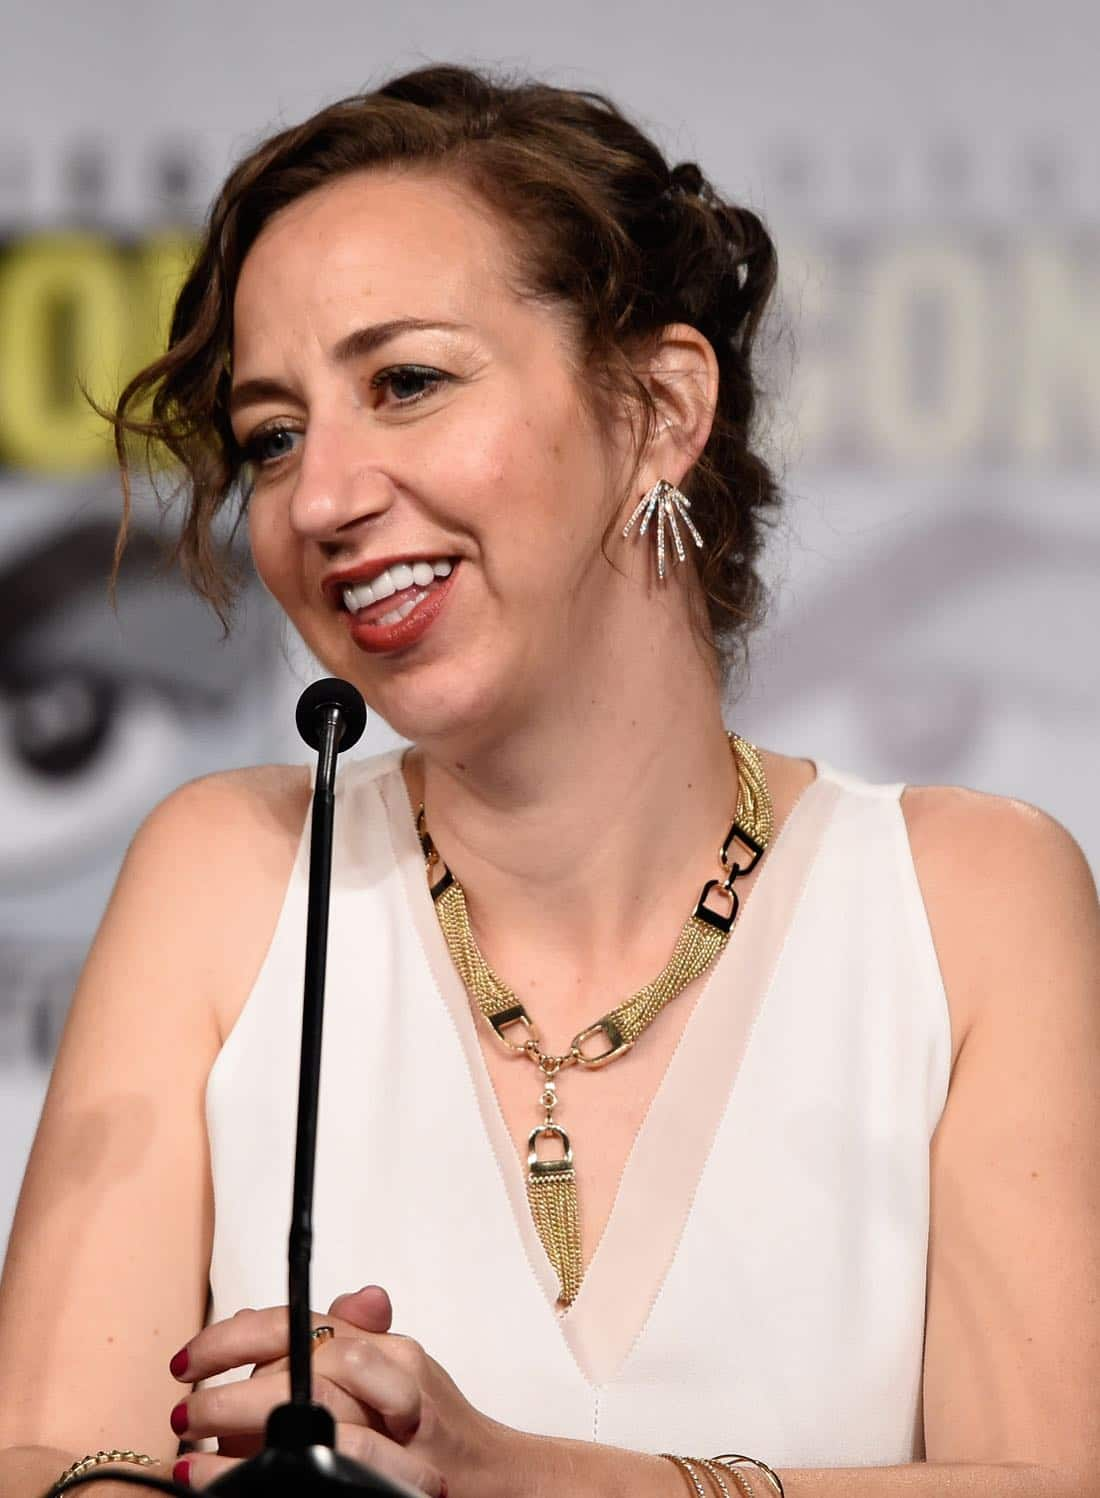 FOX FANFARE AT SAN DIEGO COMIC-CON © 2017: BOB'S BURGERS cast member Kristen Schaal during the BOB'S BURGERS panel on Friday, July 21 at the FOX FANFARE AT SAN DIEGO COMIC-CON © 2017. CR: Frank Micelotta/FOX © 2017 FOX BROADCASTING